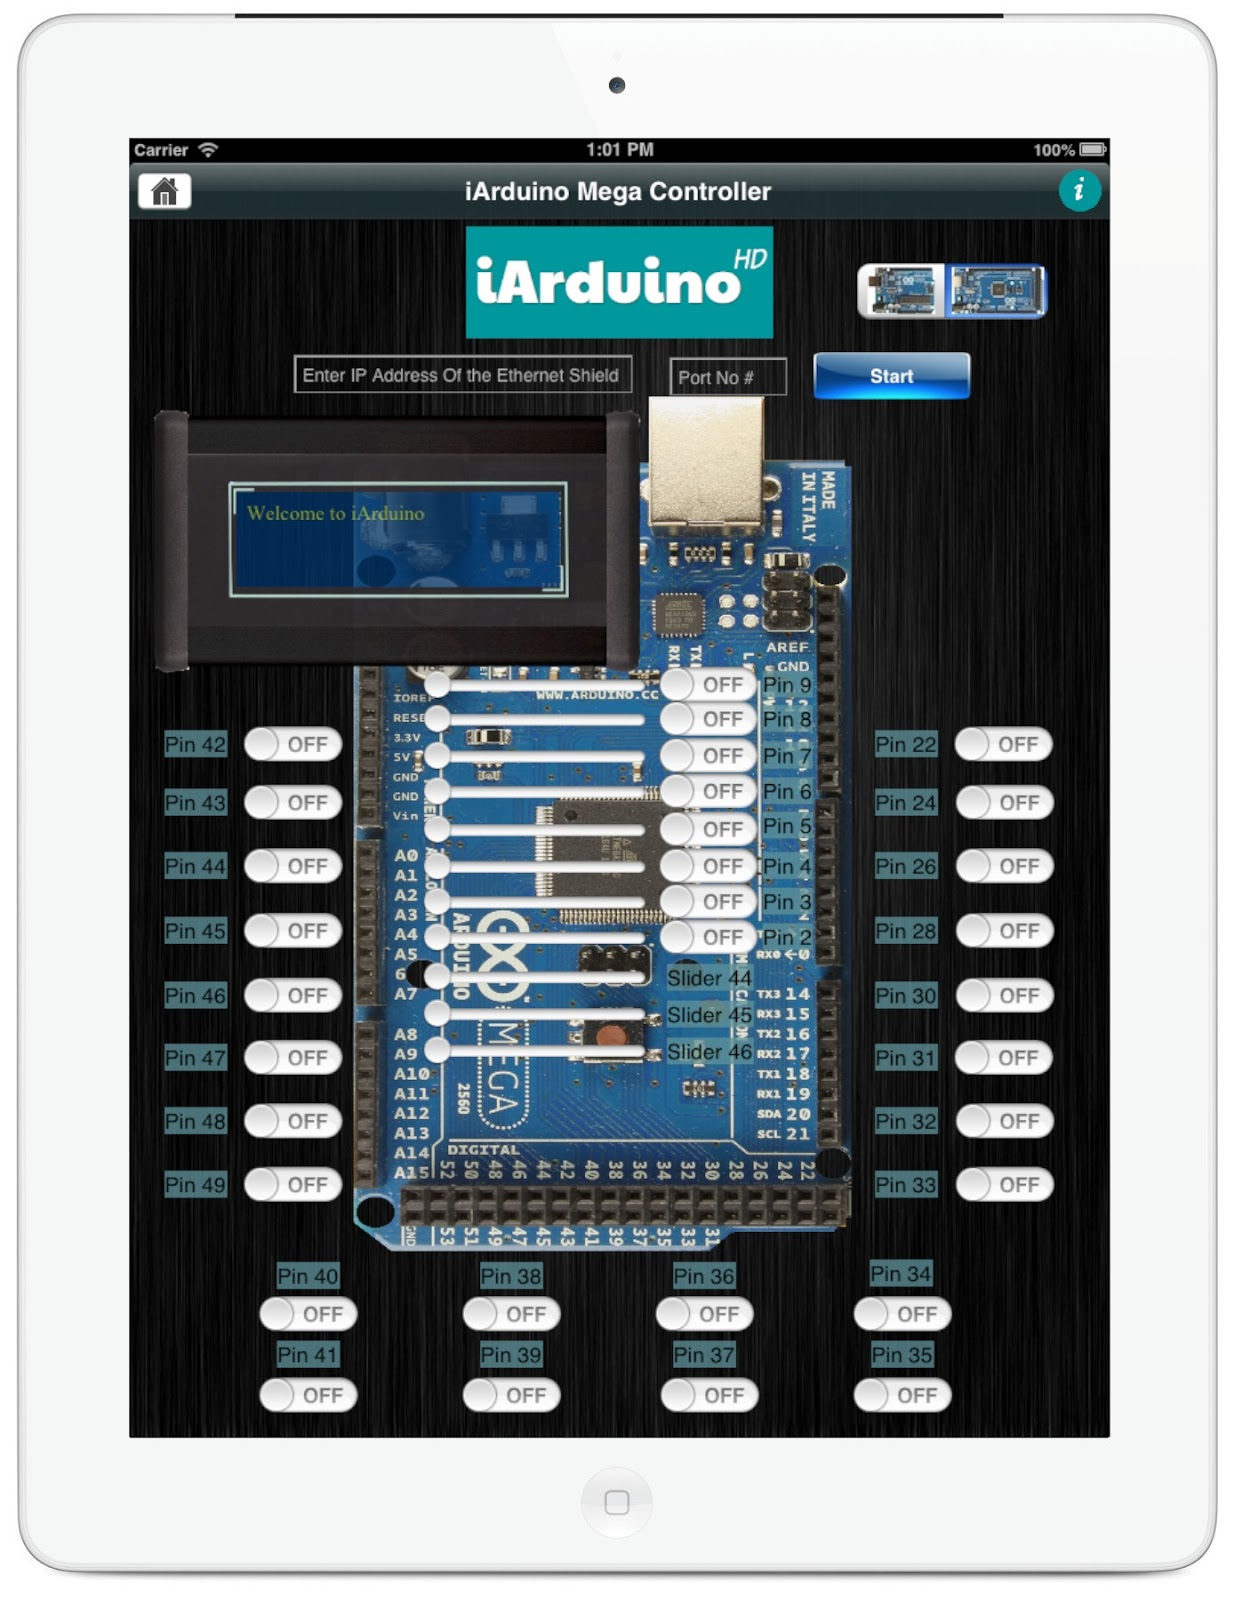 Arduino Analog Value Displayed on Gauge on Web Page